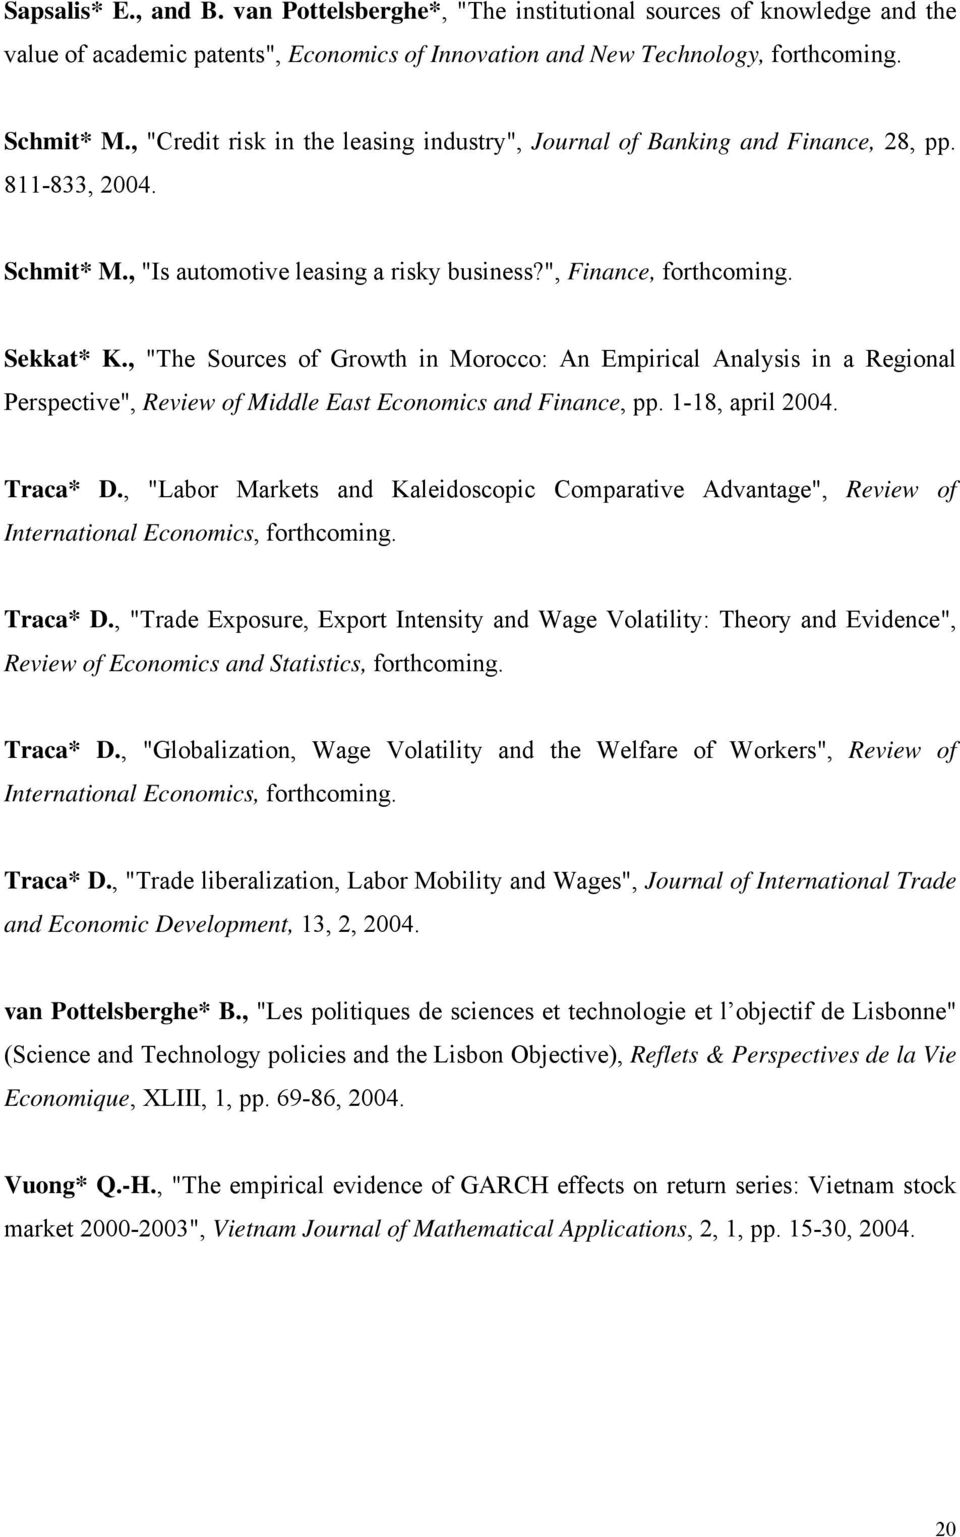 ", ""The Sources of Growth in Morocco: An Empirical Analysis in a Regional Perspective"", Review of Middle East Economics and Finance, pp. 1-18, april 2004. Traca* D."